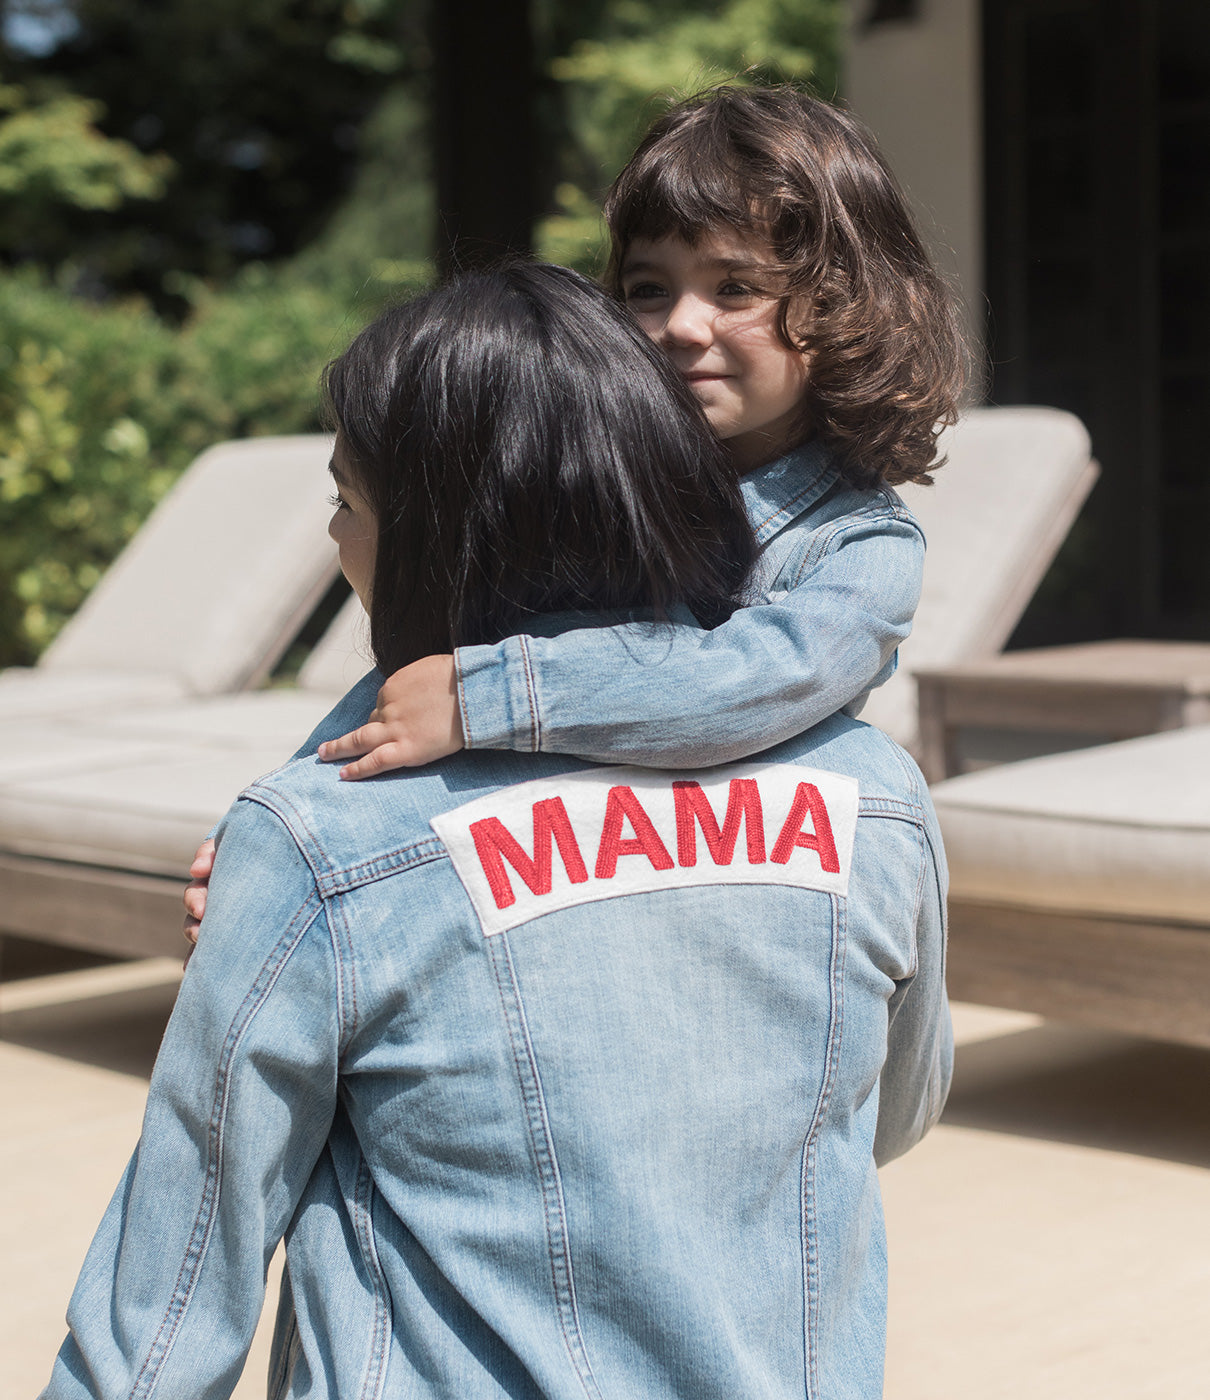 MAKE IT A PAIRCheck out the the MAMA Denim Jacket for an adorable mommy-and-me look.